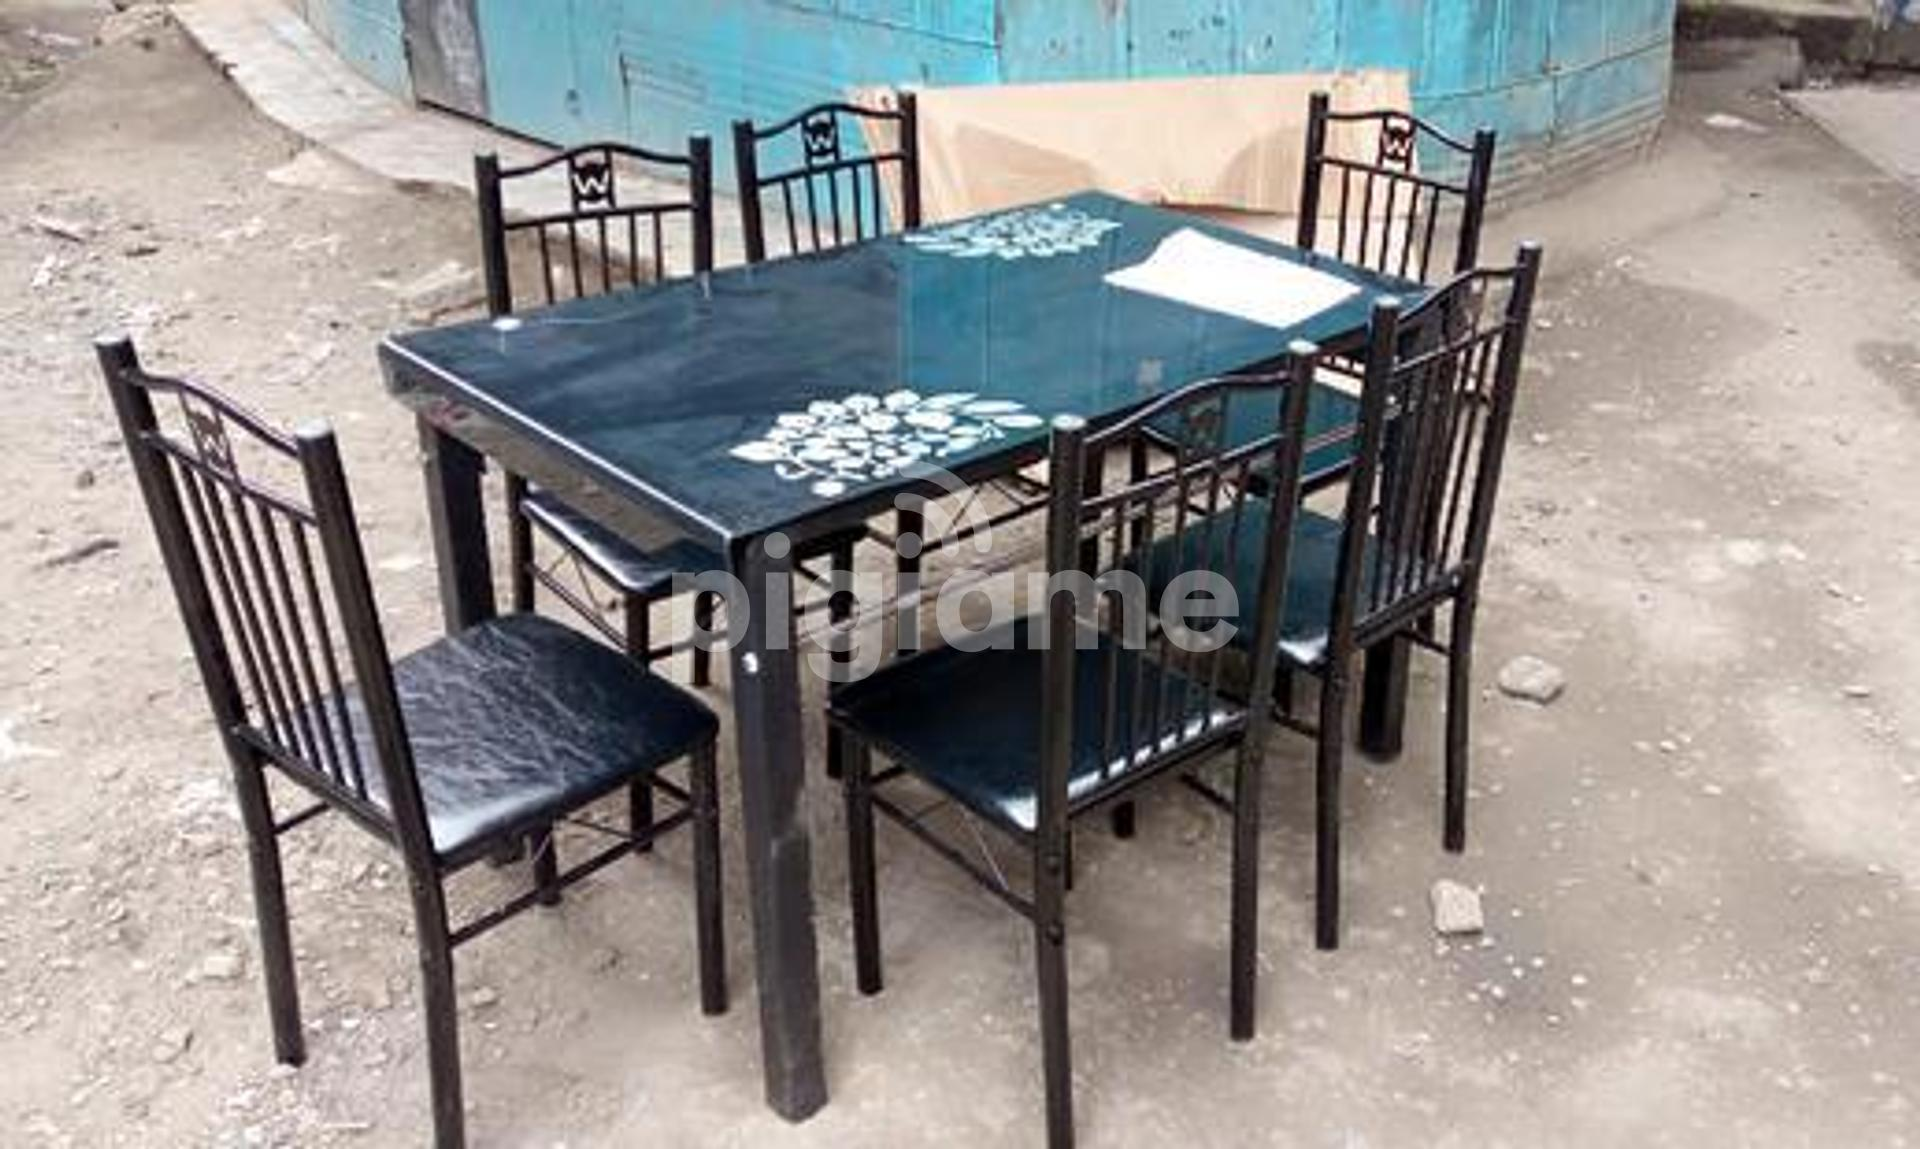 Easy To Wipe Clean Dining Table And Chairs In Nairobi Pigiame